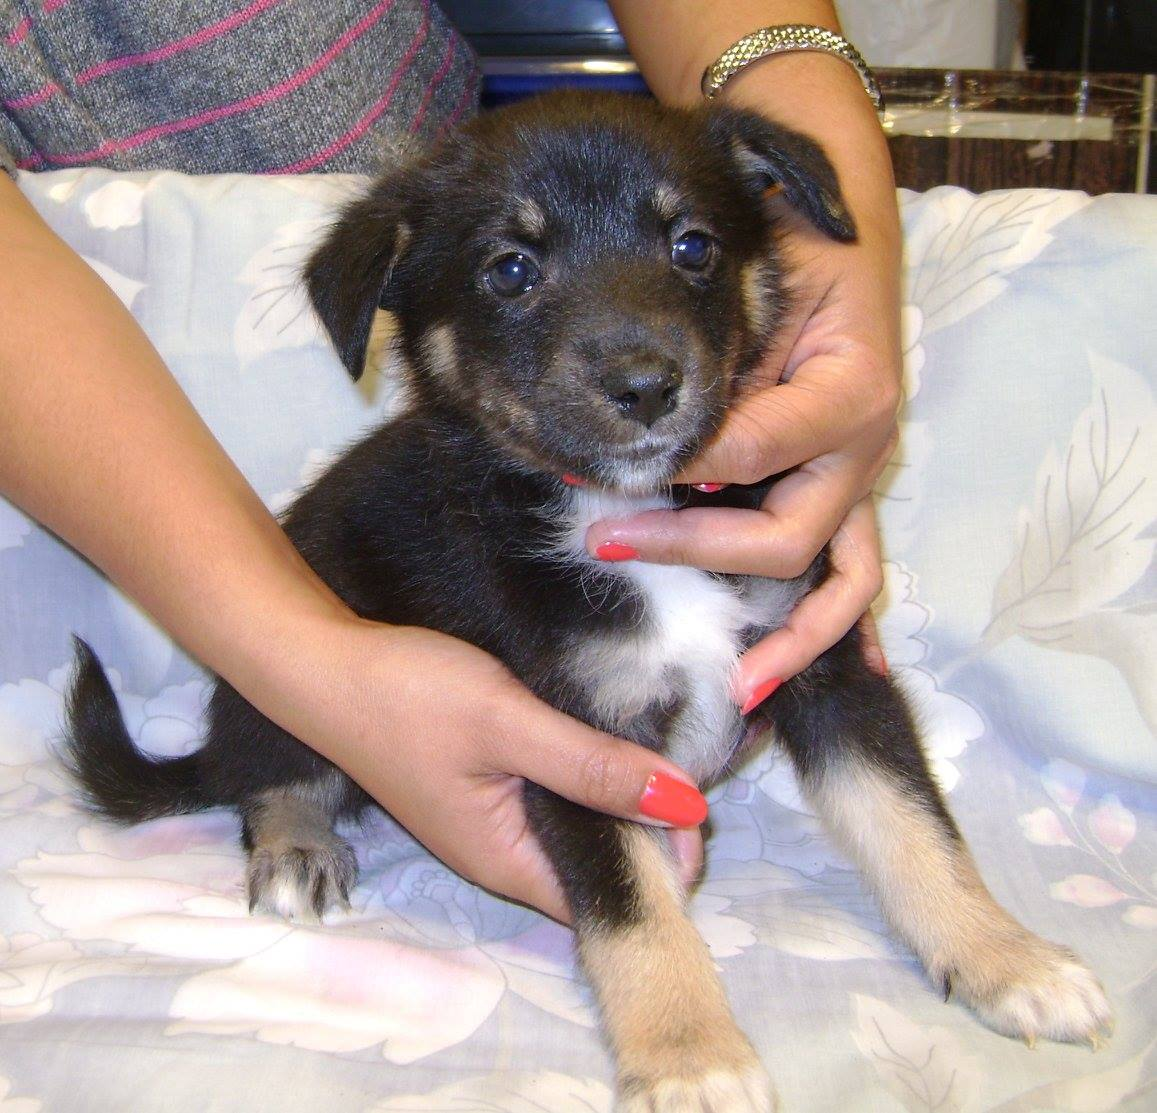 Strudel is a male, small-breed puppy.